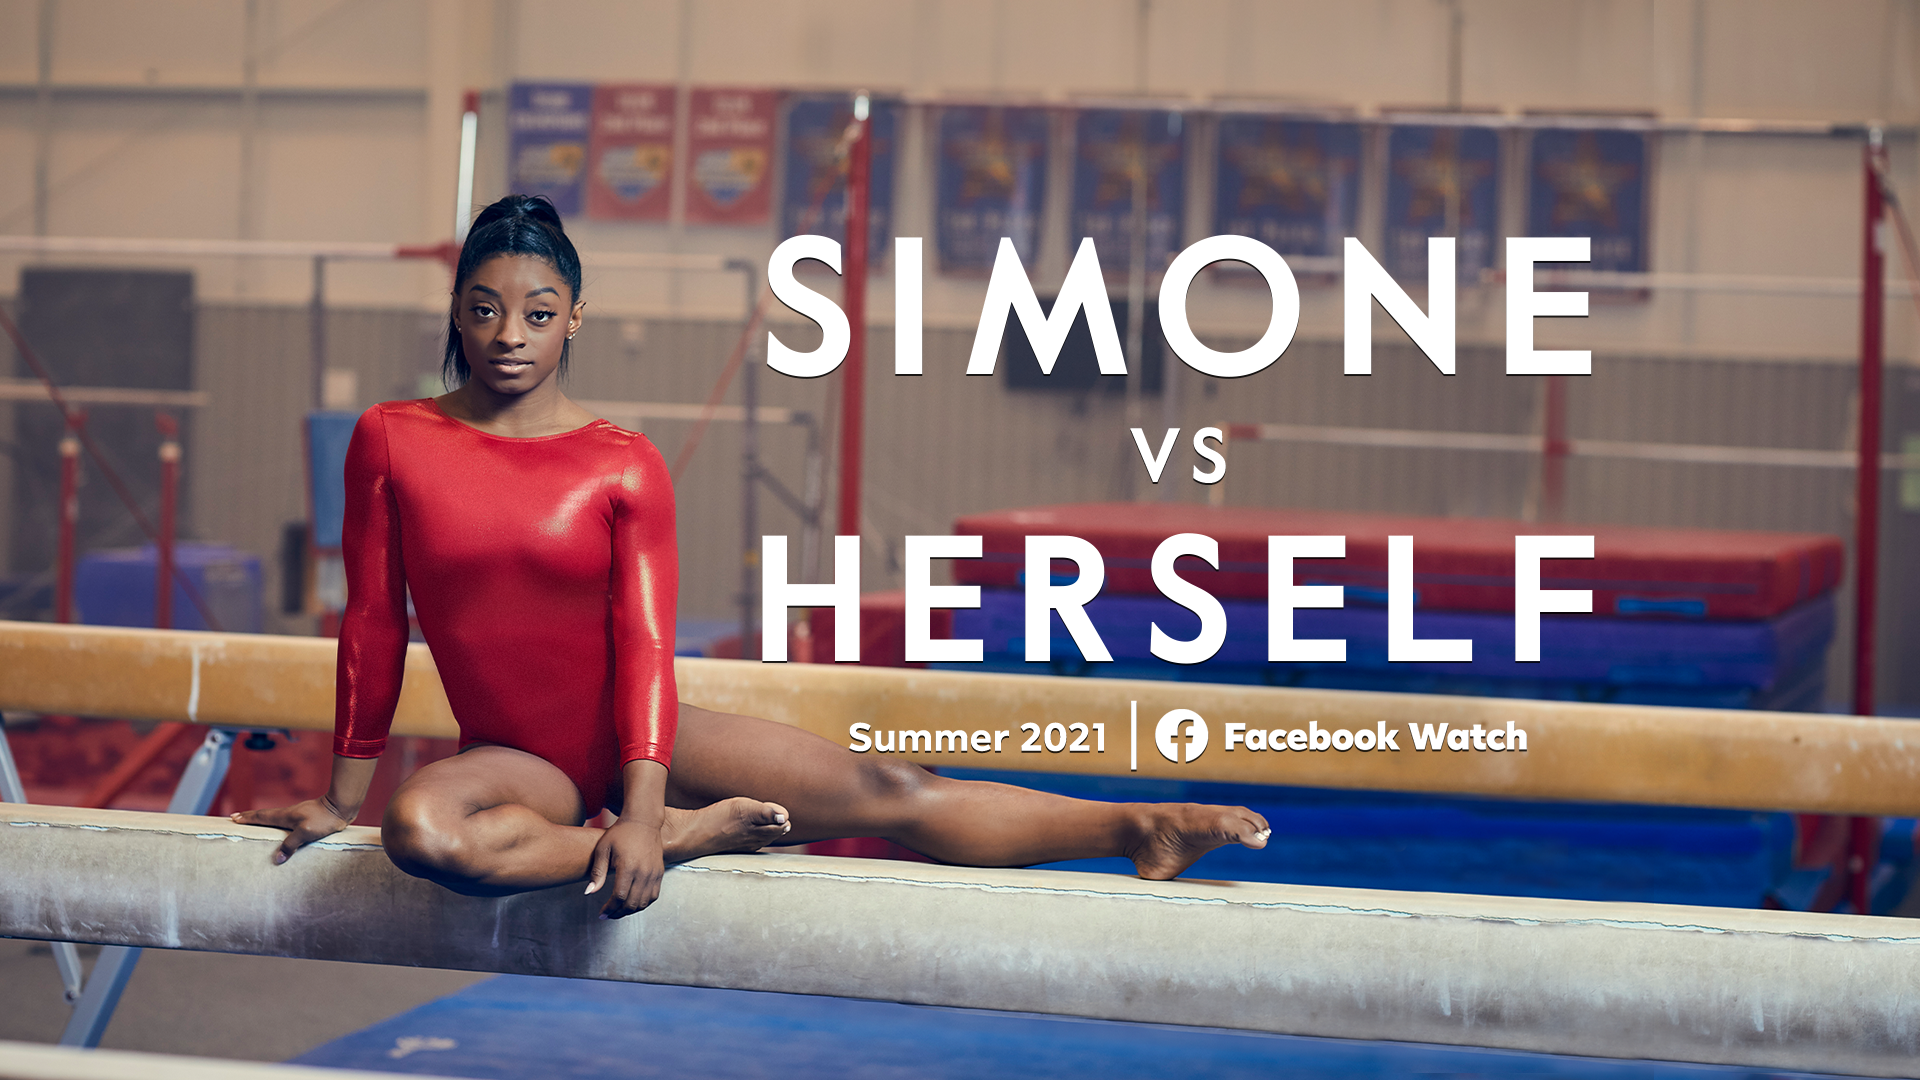 Simone Biles Facebook Watch